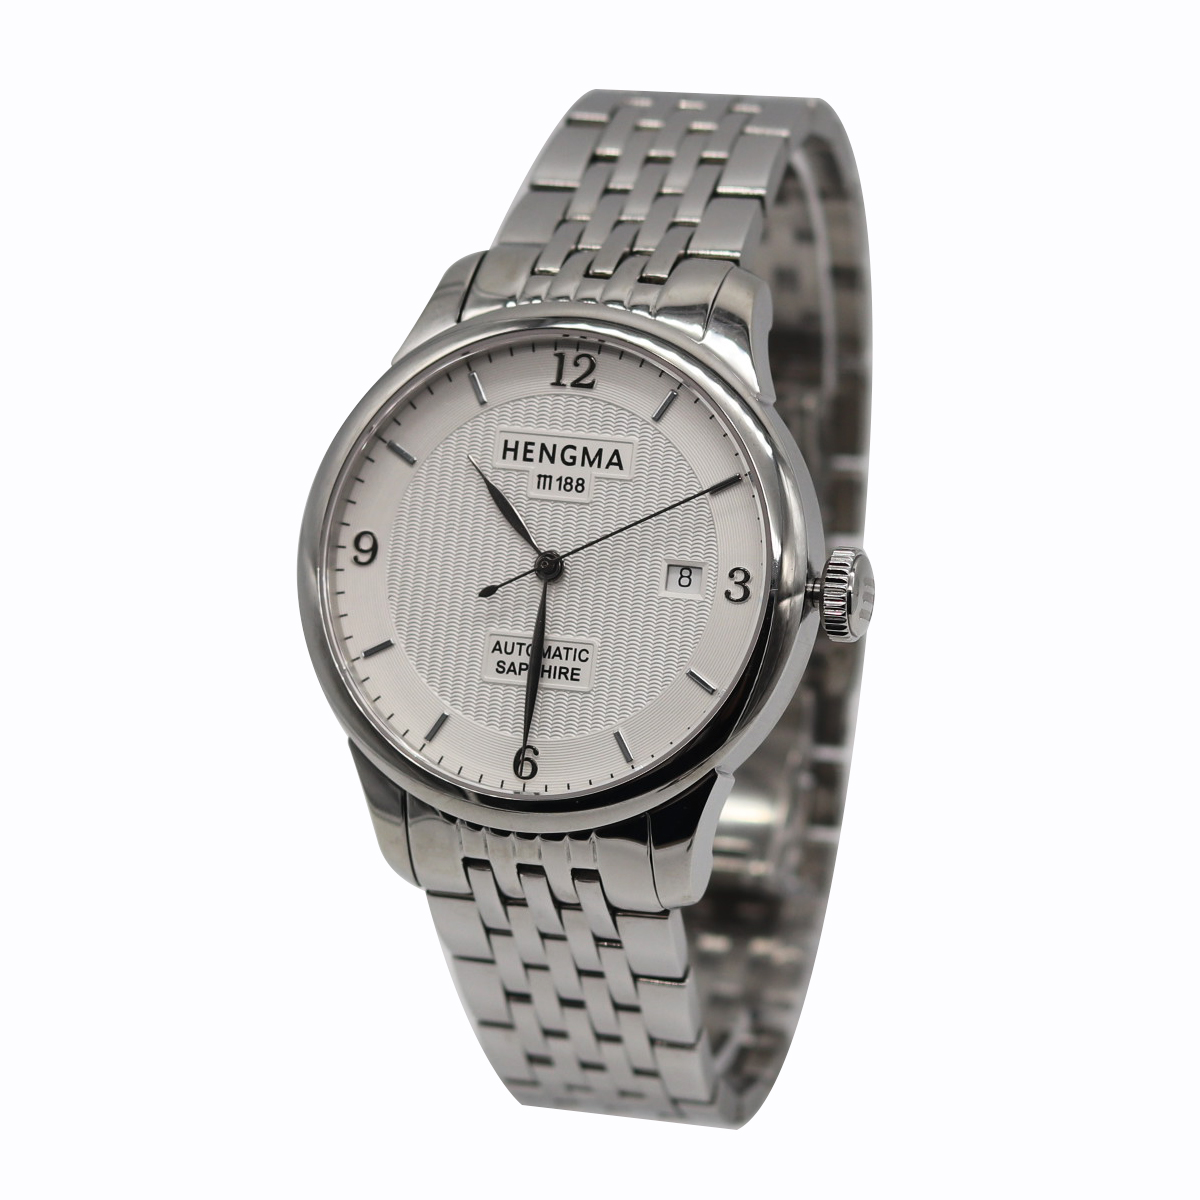 Hengma automatic mechanical watch mens white plate stainless steel watch with perspective bottom